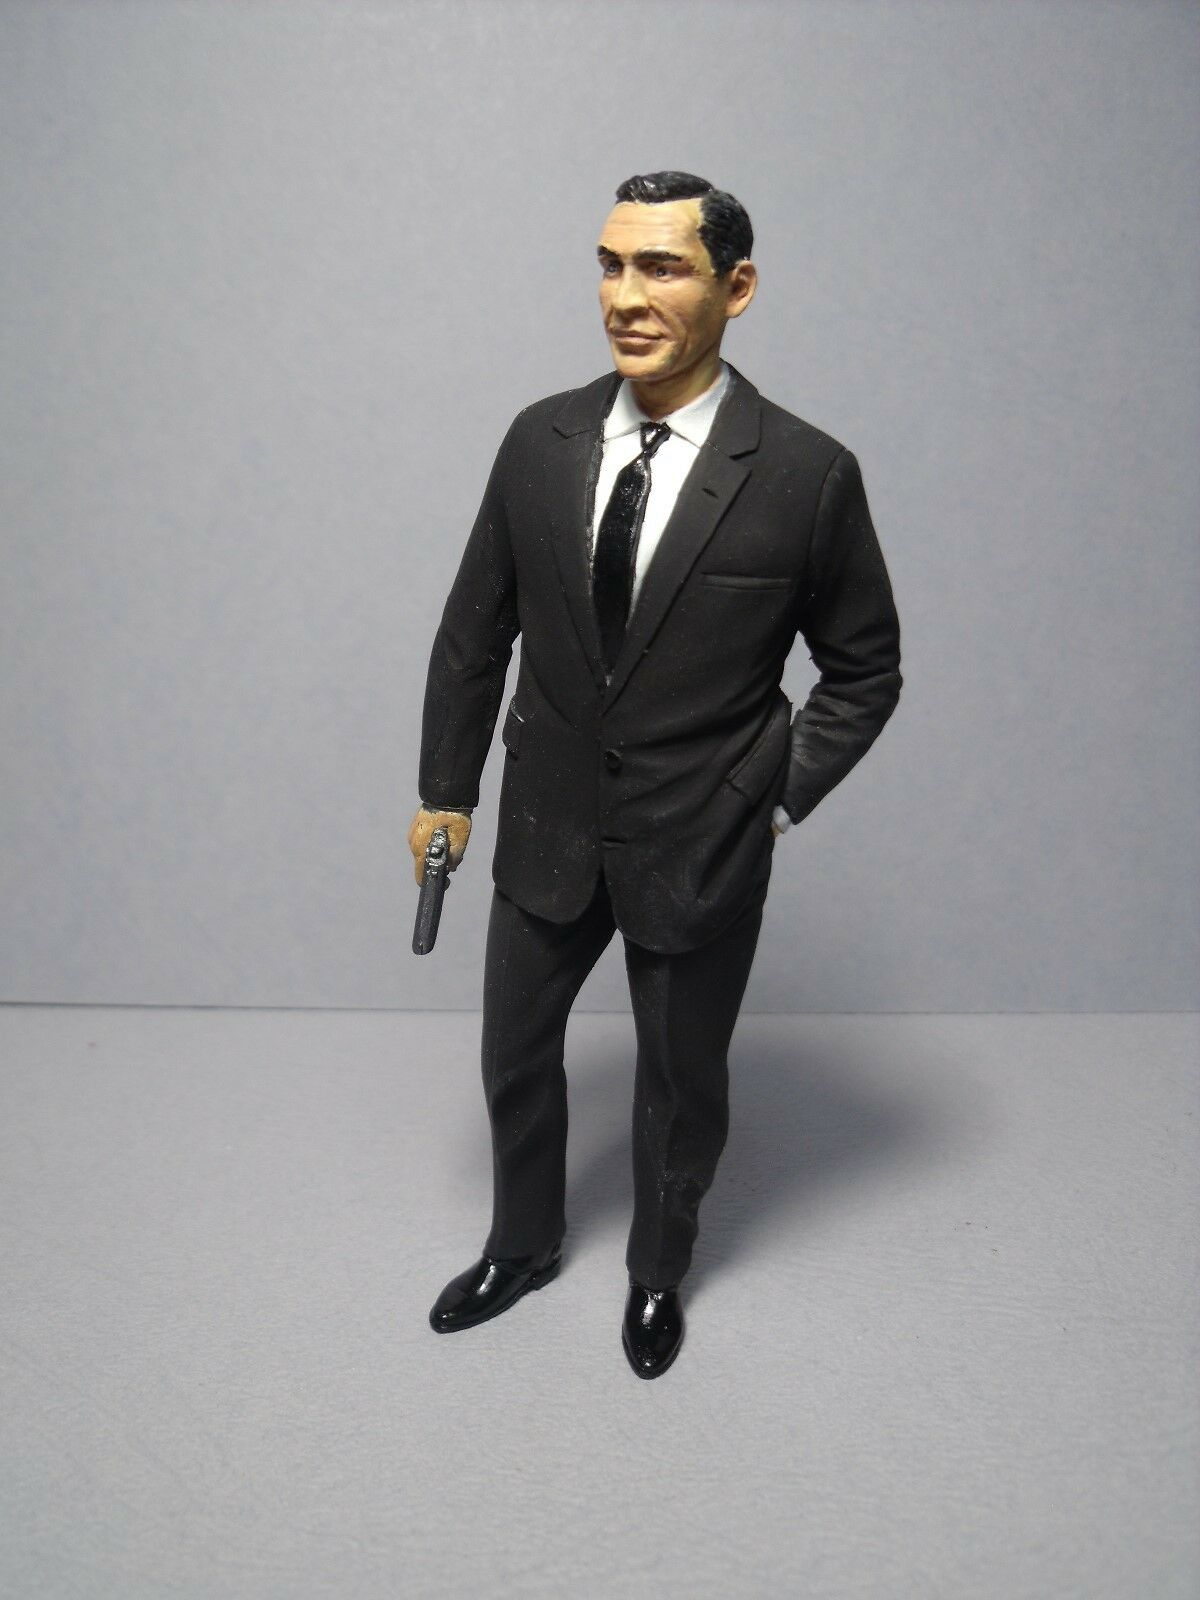 SEAN  CONNERY  1 18  PAINTED  FIGURE  MADE  BY  VROOM  FOR  AUTOART  MINICHAMPS